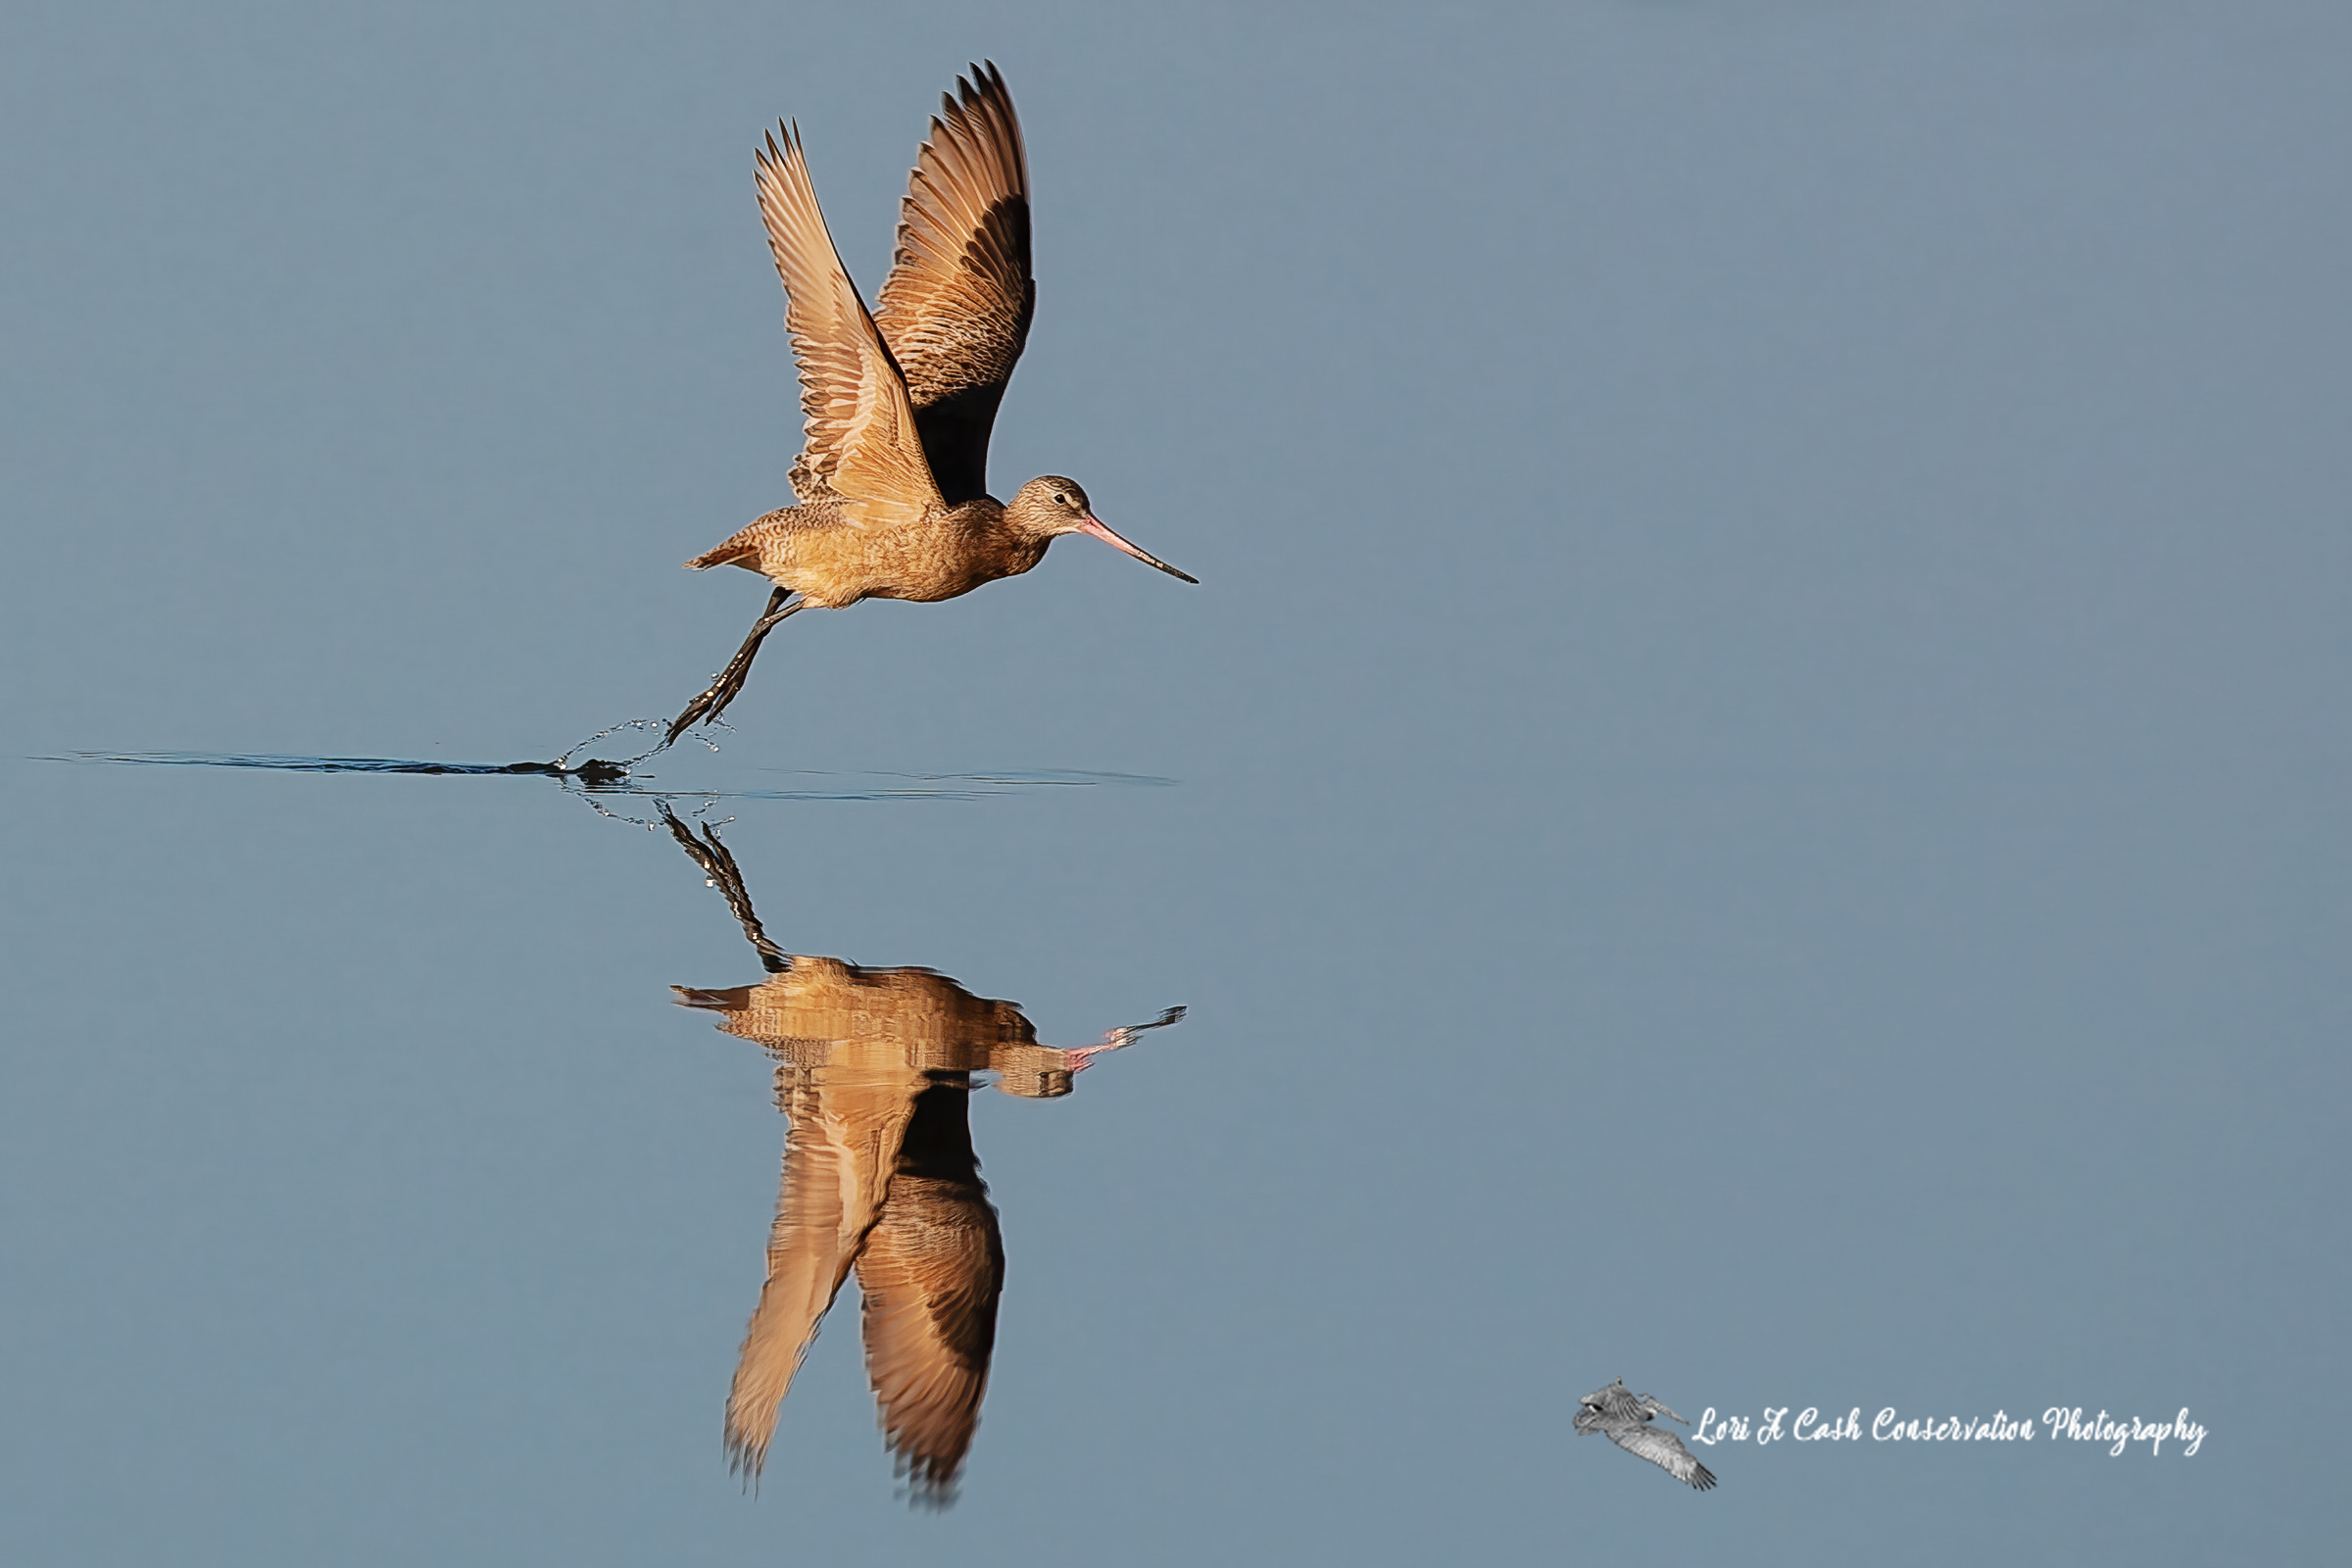 Marbled godwit in flight with reflection in water as it flies over the water at Pea Island National Wildlife Refuge on the Outer Banks of North Carolina.